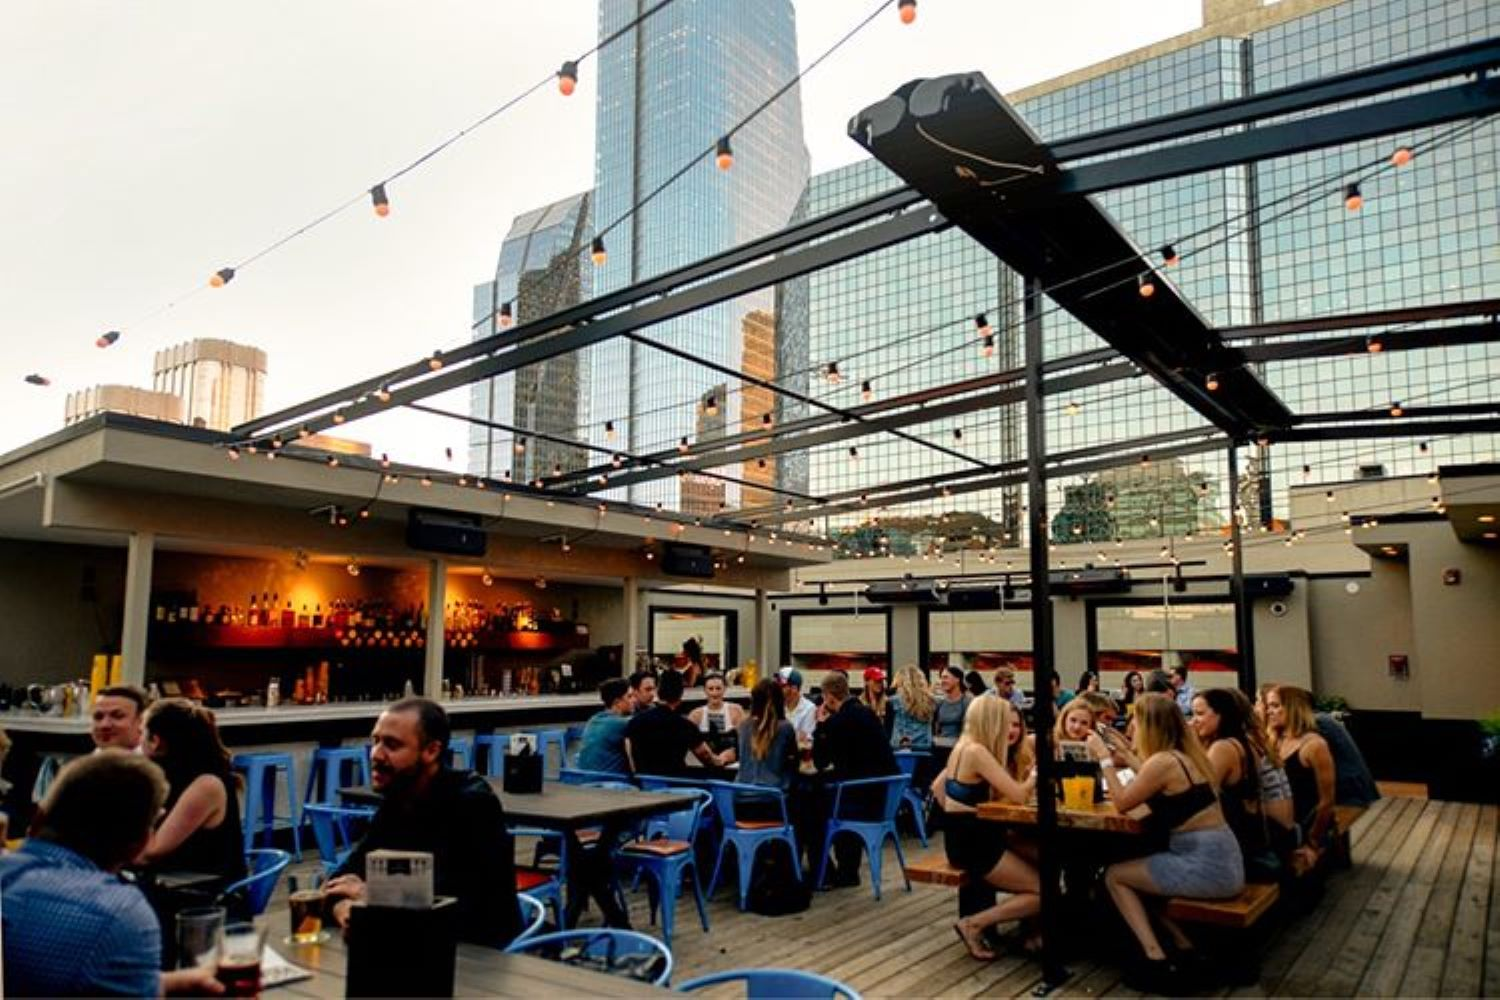 15 cozy heated patios that you have to check out in Calgary